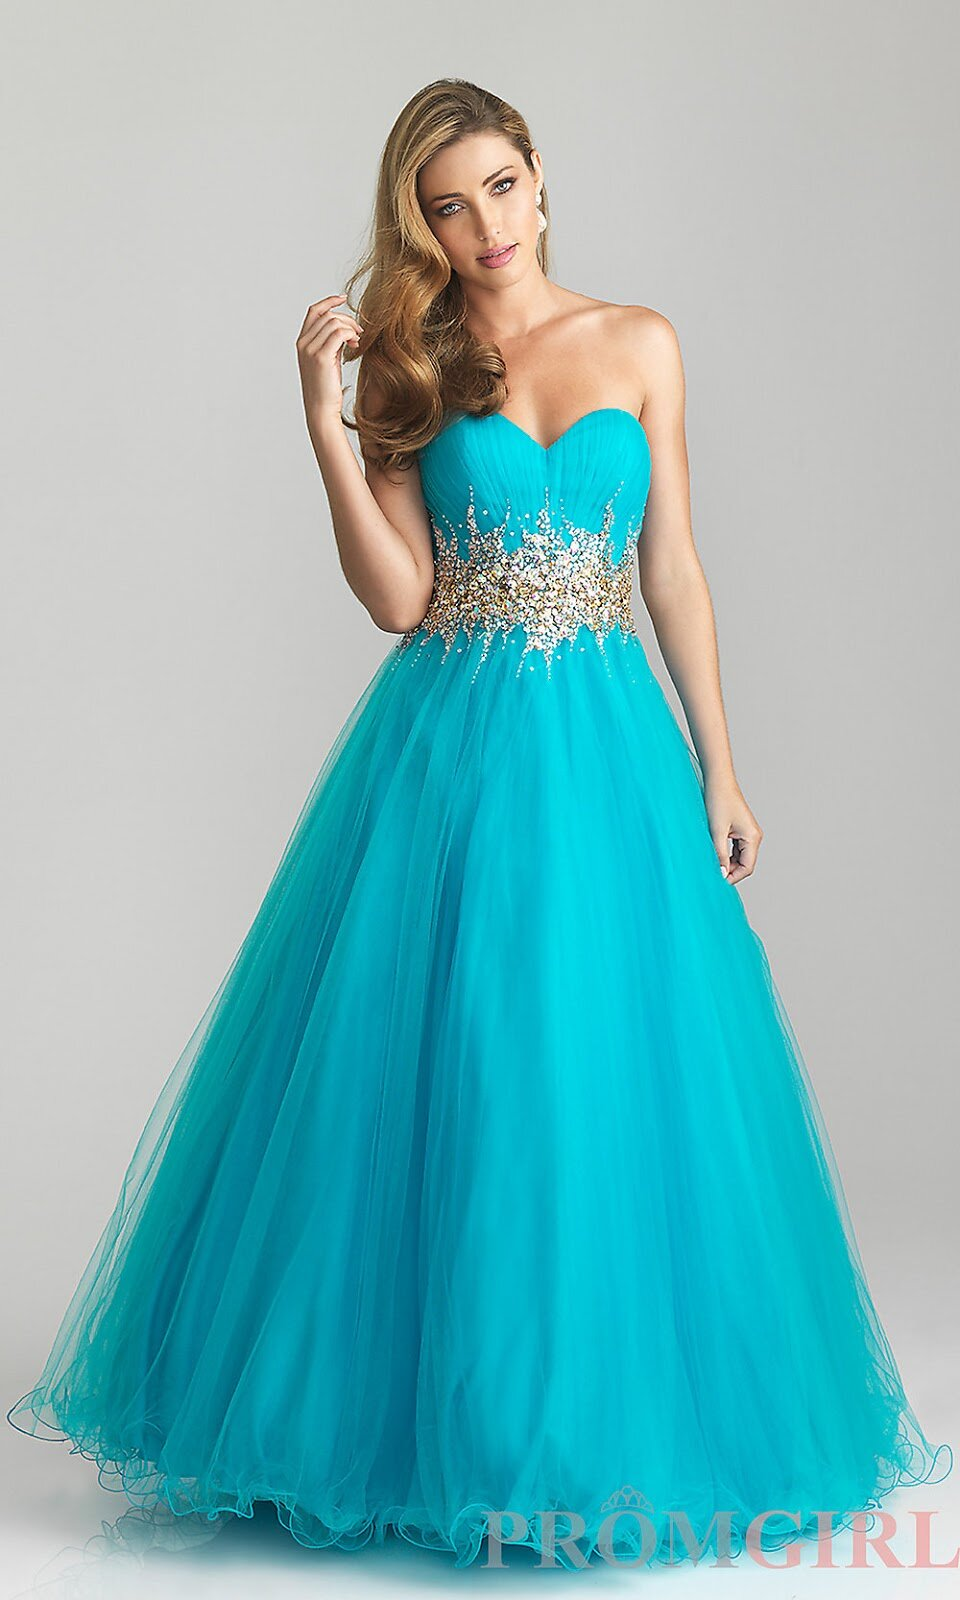 Turquoise dresses for weddings Photo - 6